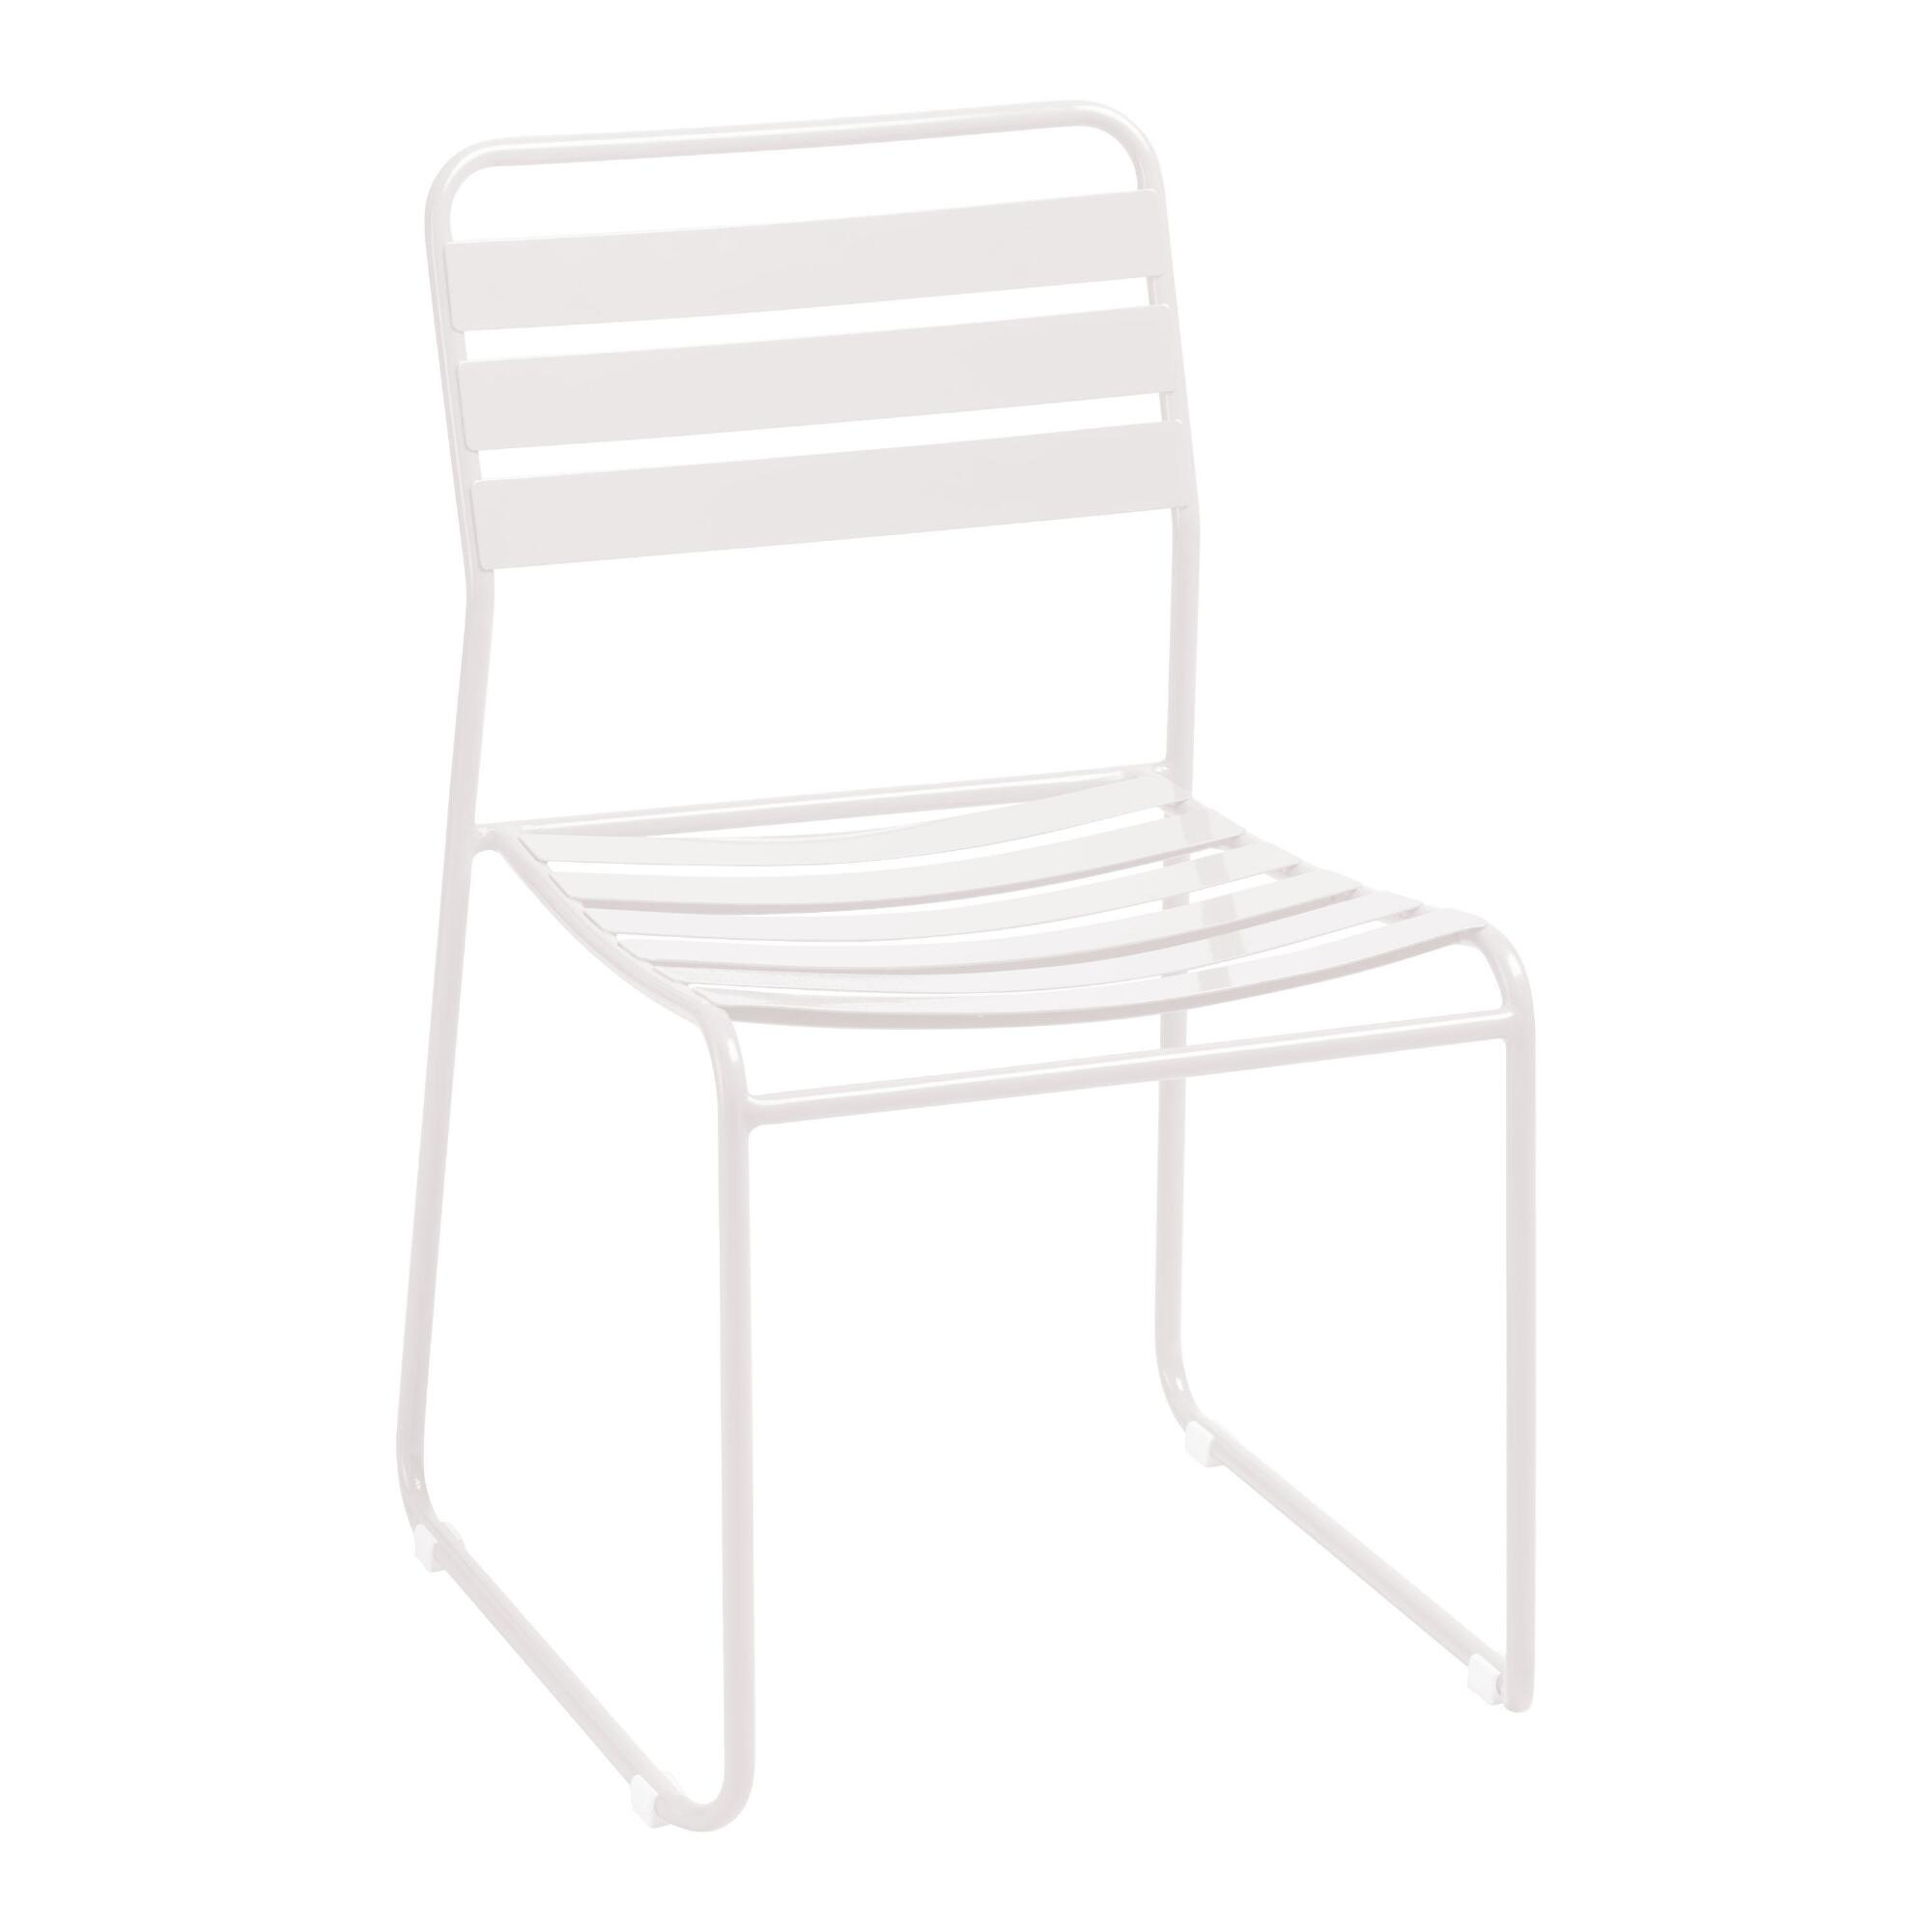 Metal Naxos Outdoor Dining Chairs World Market